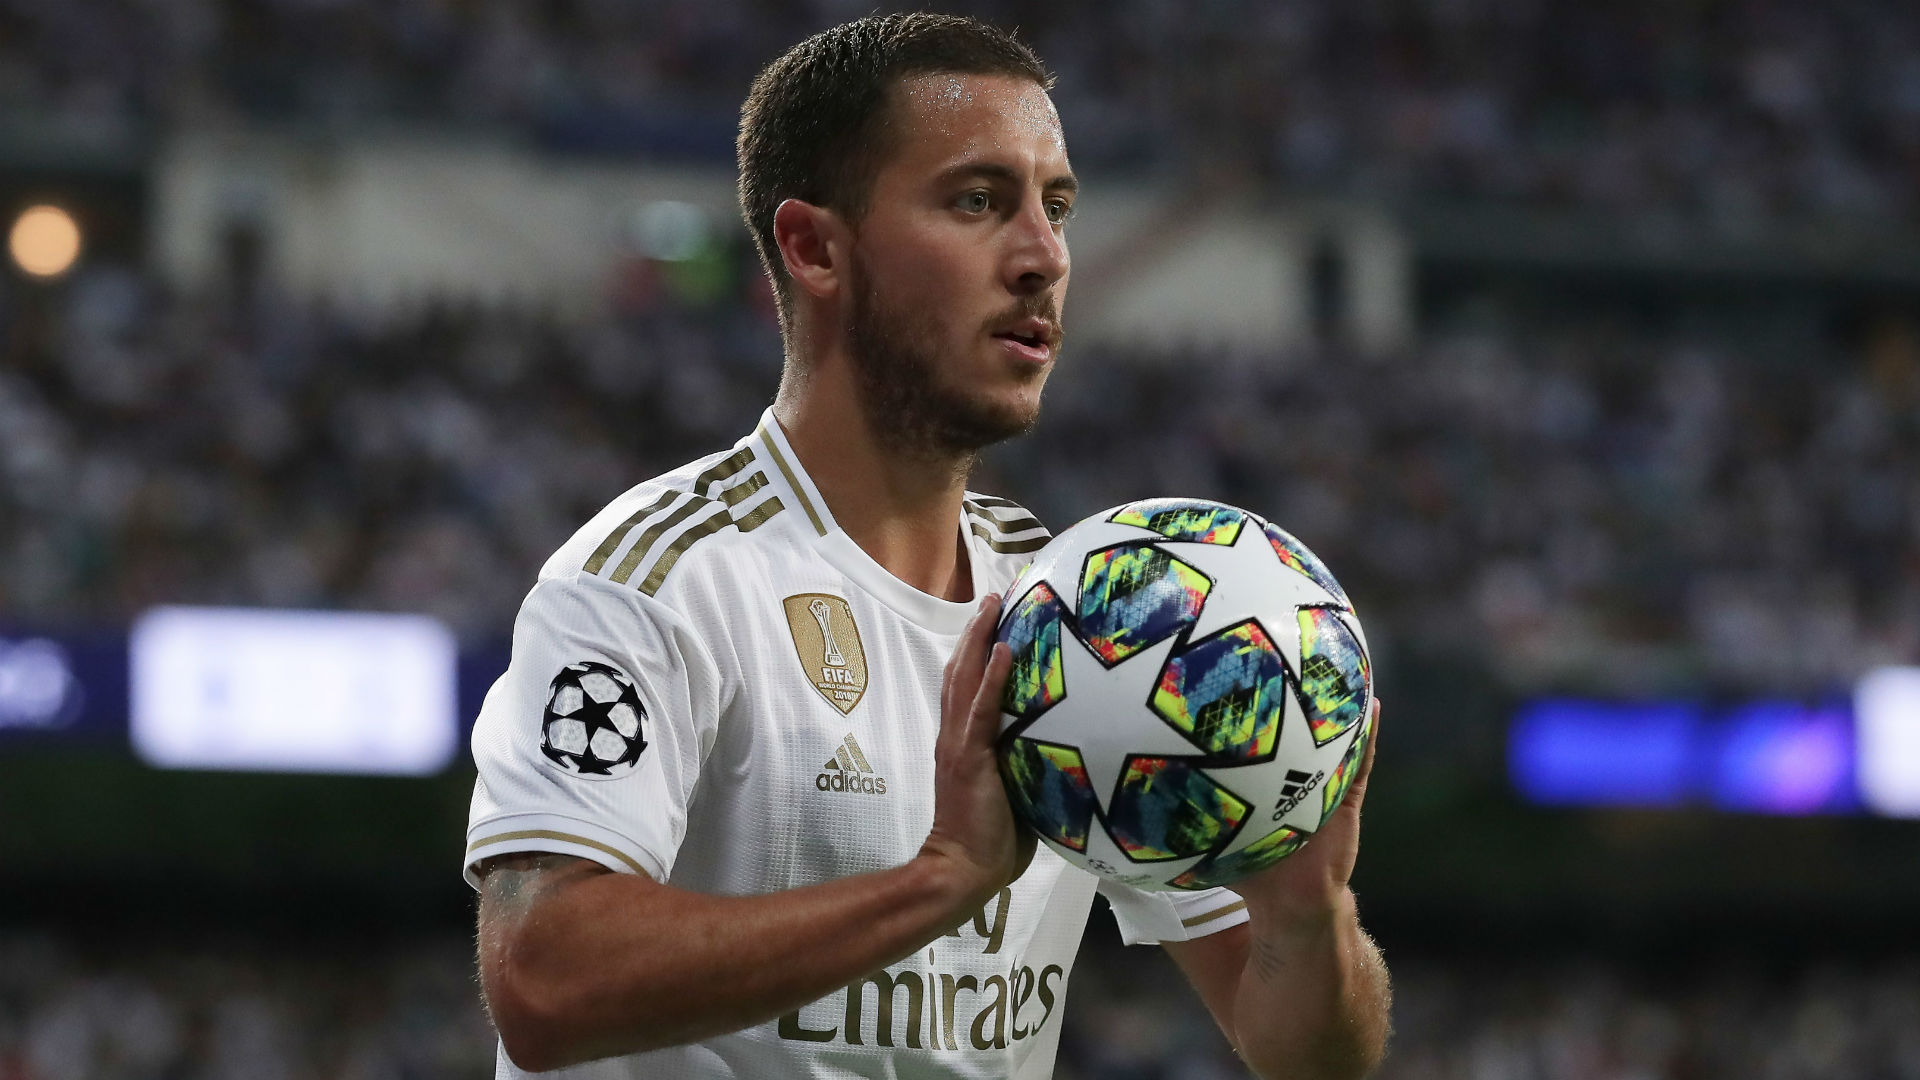 Eden Hazard was wasteful against Galatasaray on Tuesday, but Real Madrid coach Zinedine Zidane says he is not worried.